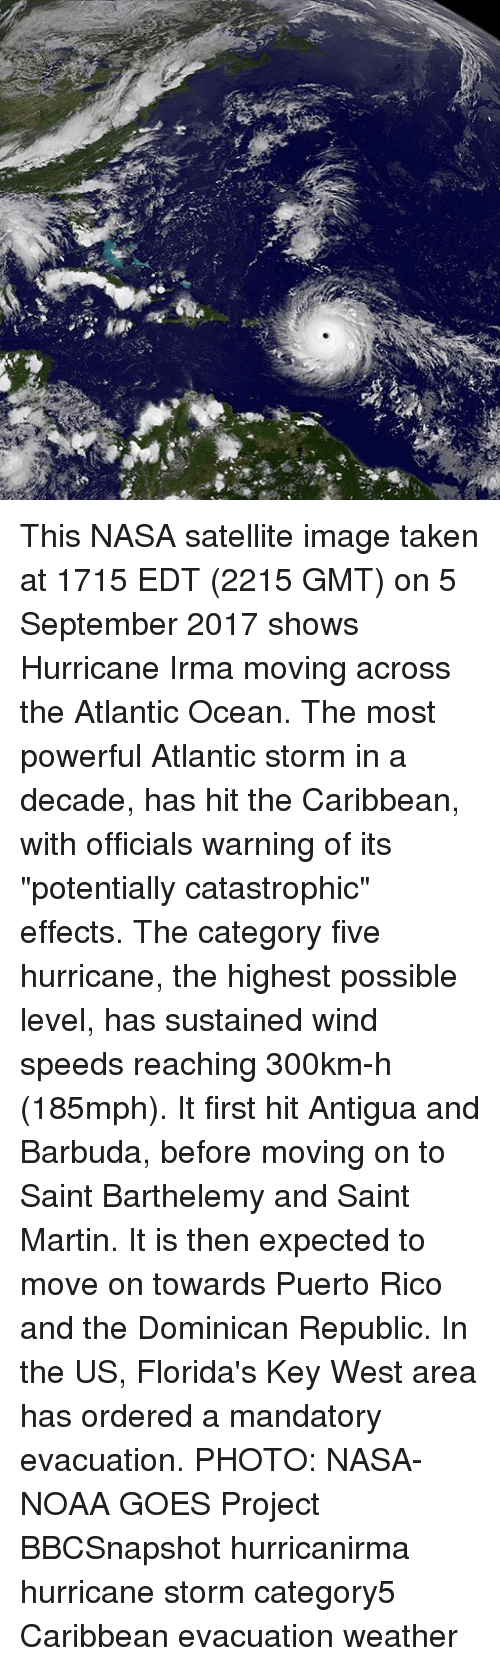 """Martin, Memes, and Nasa: This NASA satellite image taken at 1715 EDT (2215 GMT) on 5 September 2017 shows Hurricane Irma moving across the Atlantic Ocean. The most powerful Atlantic storm in a decade, has hit the Caribbean, with officials warning of its """"potentially catastrophic"""" effects. The category five hurricane, the highest possible level, has sustained wind speeds reaching 300km-h (185mph). It first hit Antigua and Barbuda, before moving on to Saint Barthelemy and Saint Martin. It is then expected to move on towards Puerto Rico and the Dominican Republic. In the US, Florida's Key West area has ordered a mandatory evacuation. PHOTO: NASA-NOAA GOES Project BBCSnapshot hurricanirma hurricane storm category5 Caribbean evacuation weather"""